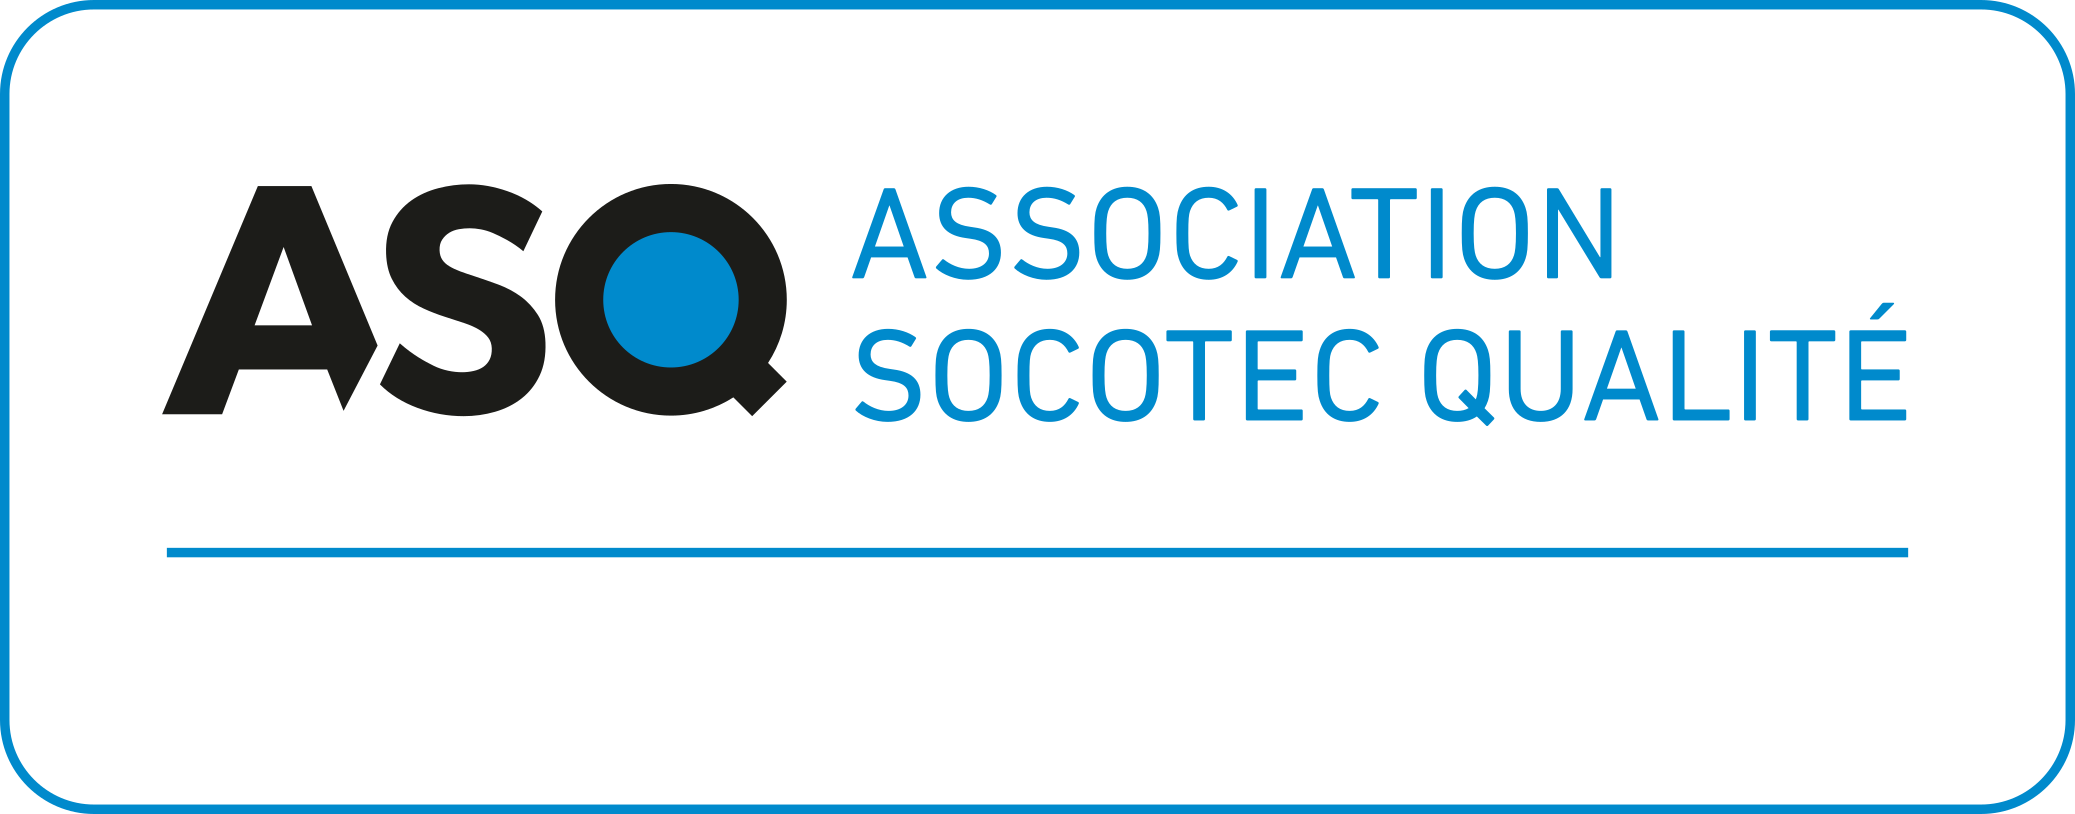 Certification Association Socotec Qualité